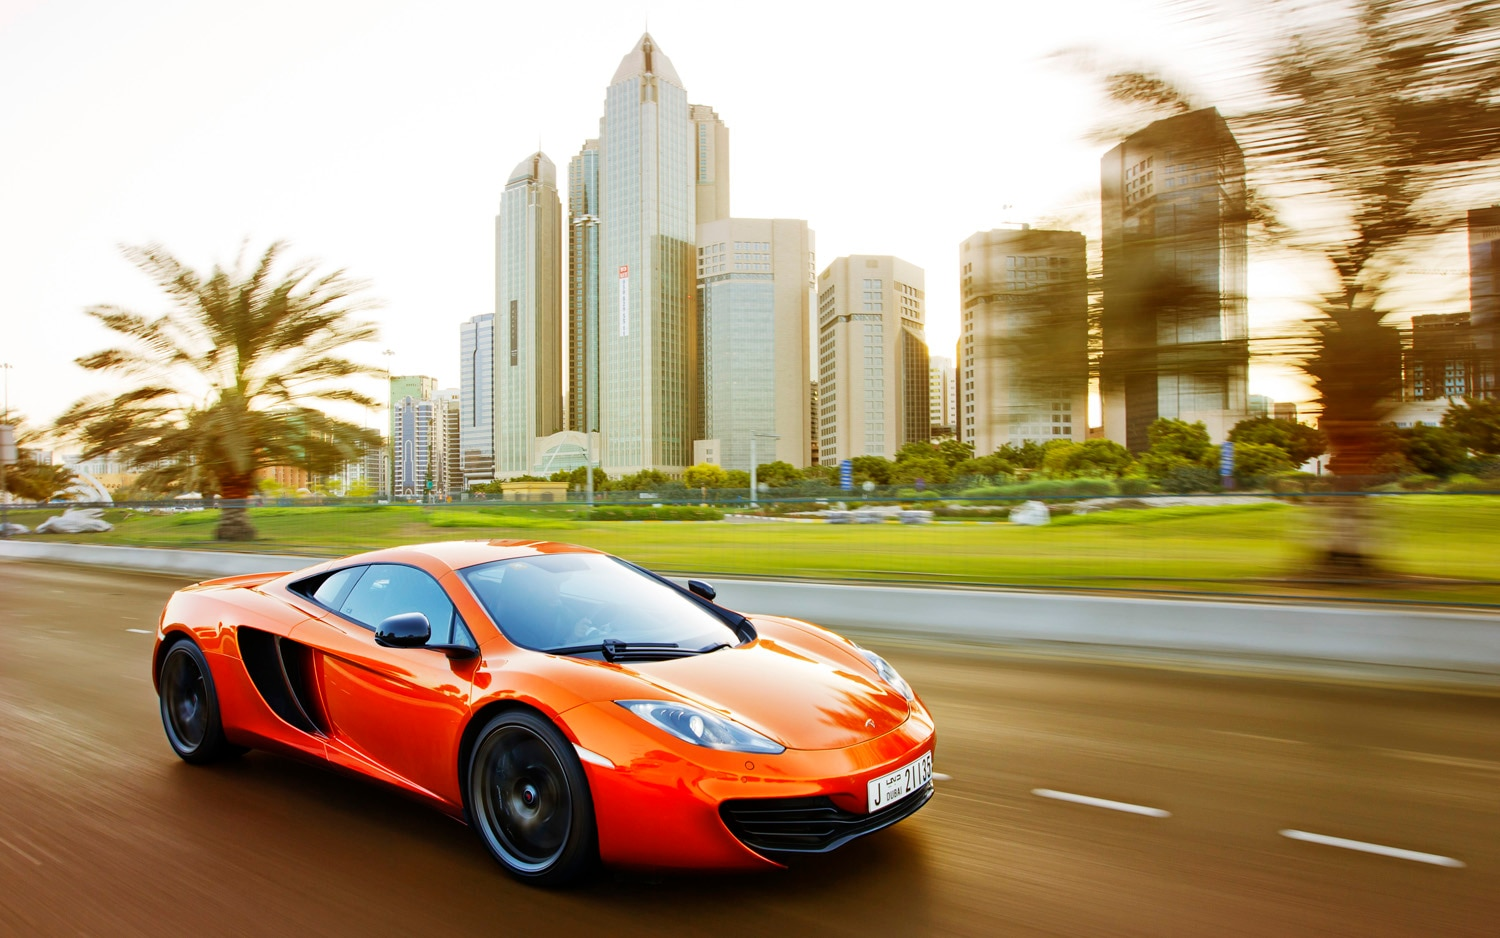 2012 McLaren MP4 12C Front Three Quarter Abu Dhabi1